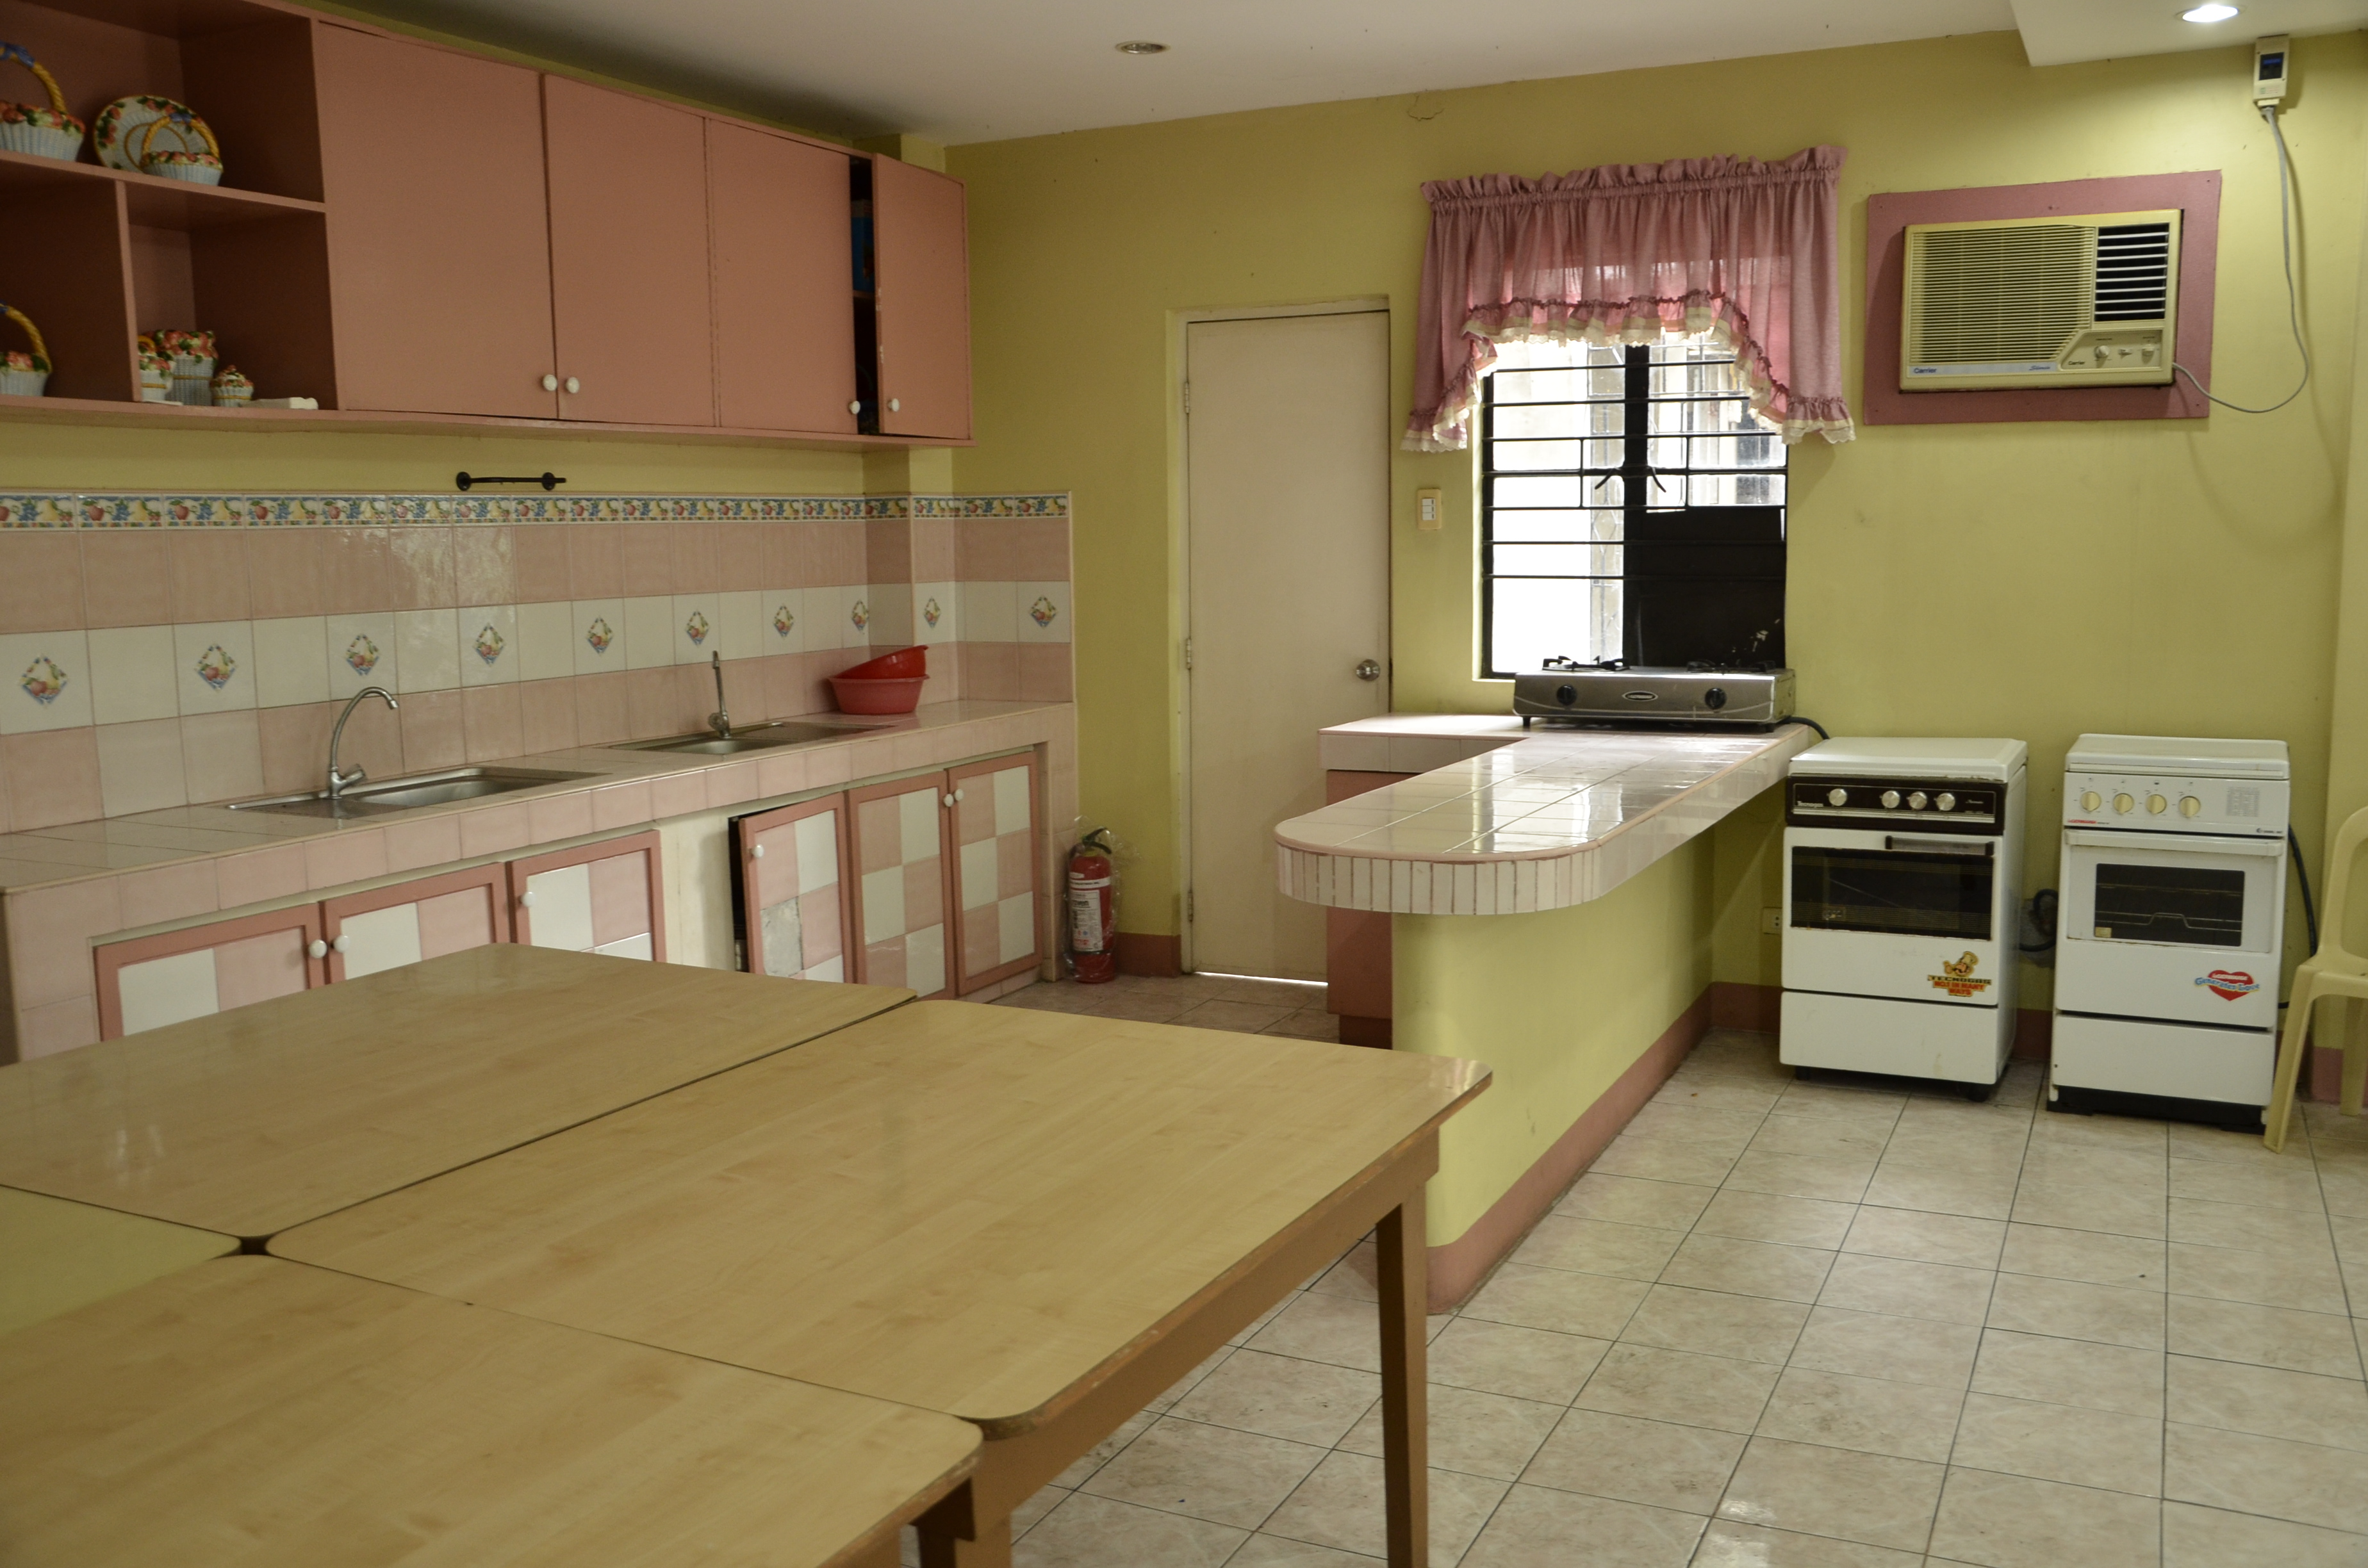 NAZARETH HOME 2 - BED FACILITIES